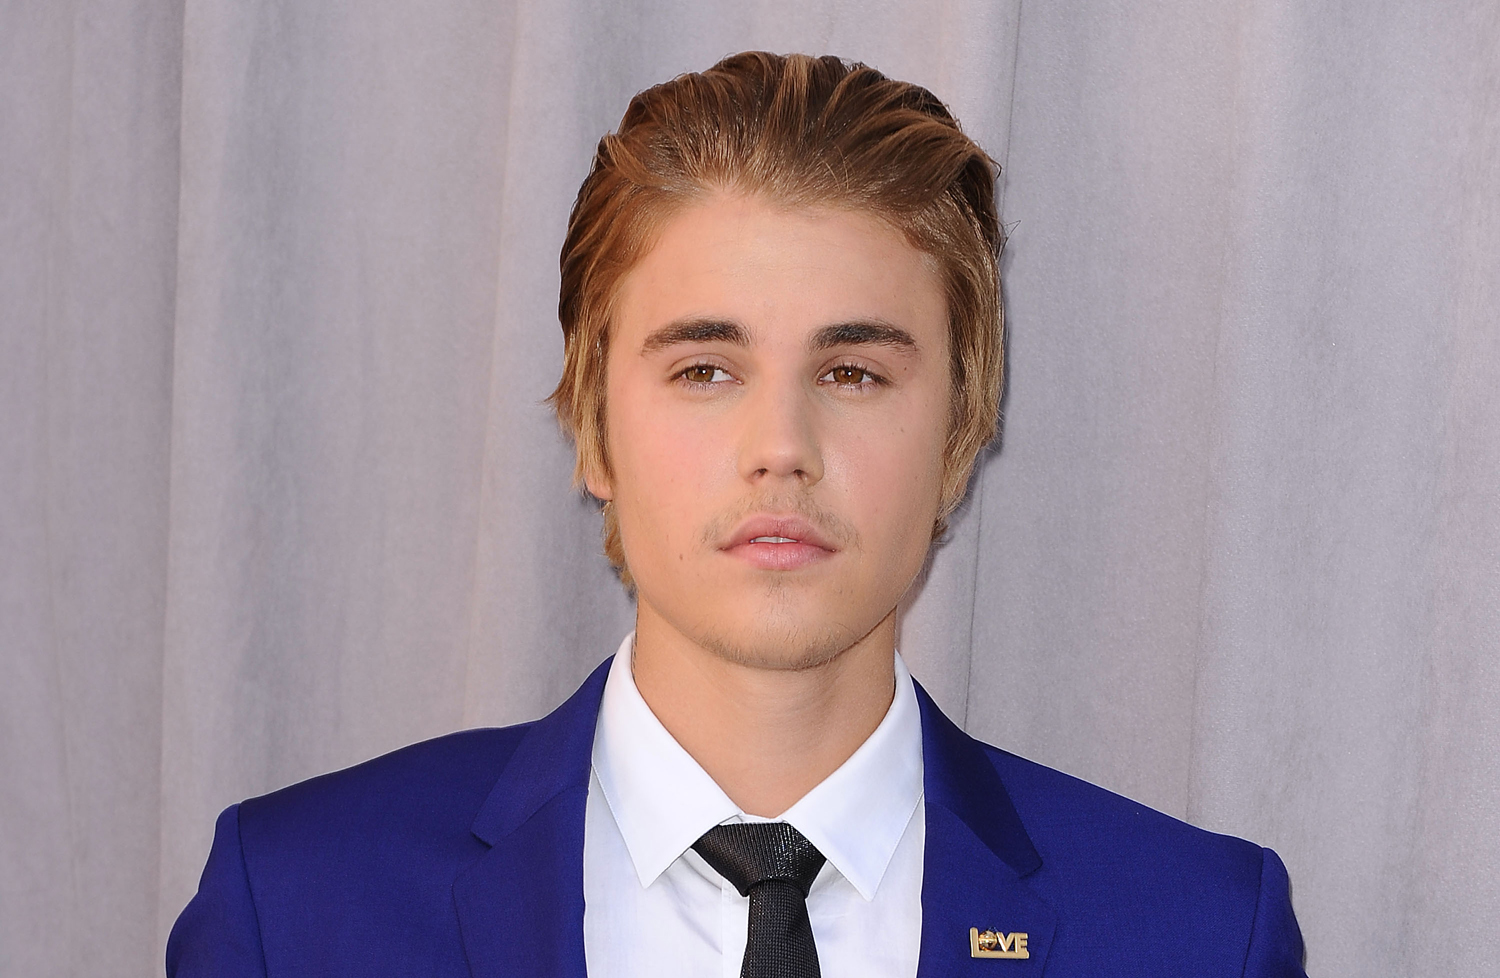 Justin Bieber attends the Comedy Central Roast of Justin Bieber on March 14, 2015, in Los Angeles